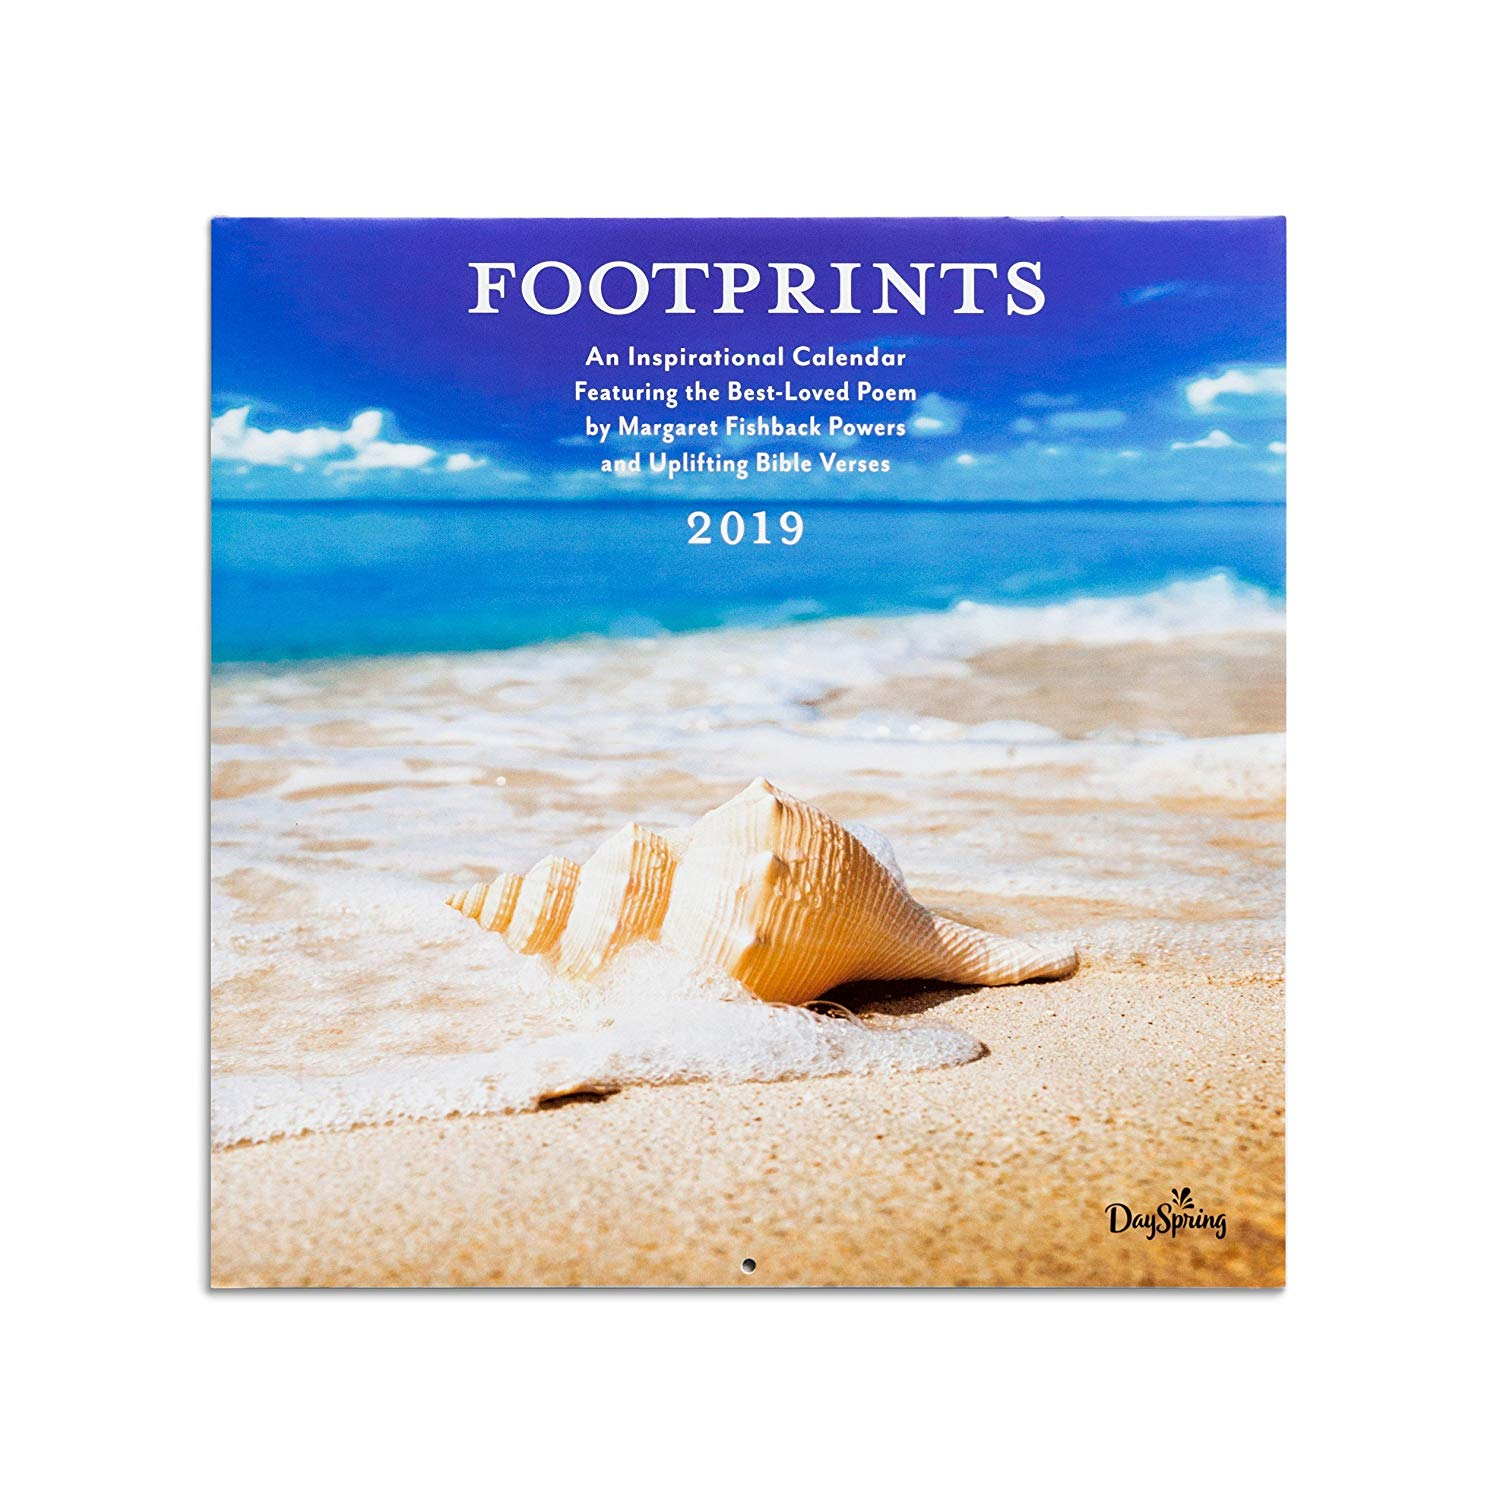 DaySpring DaySpring - Footprints, by Margaret Fishback Powers - 2019 Wall Calendar